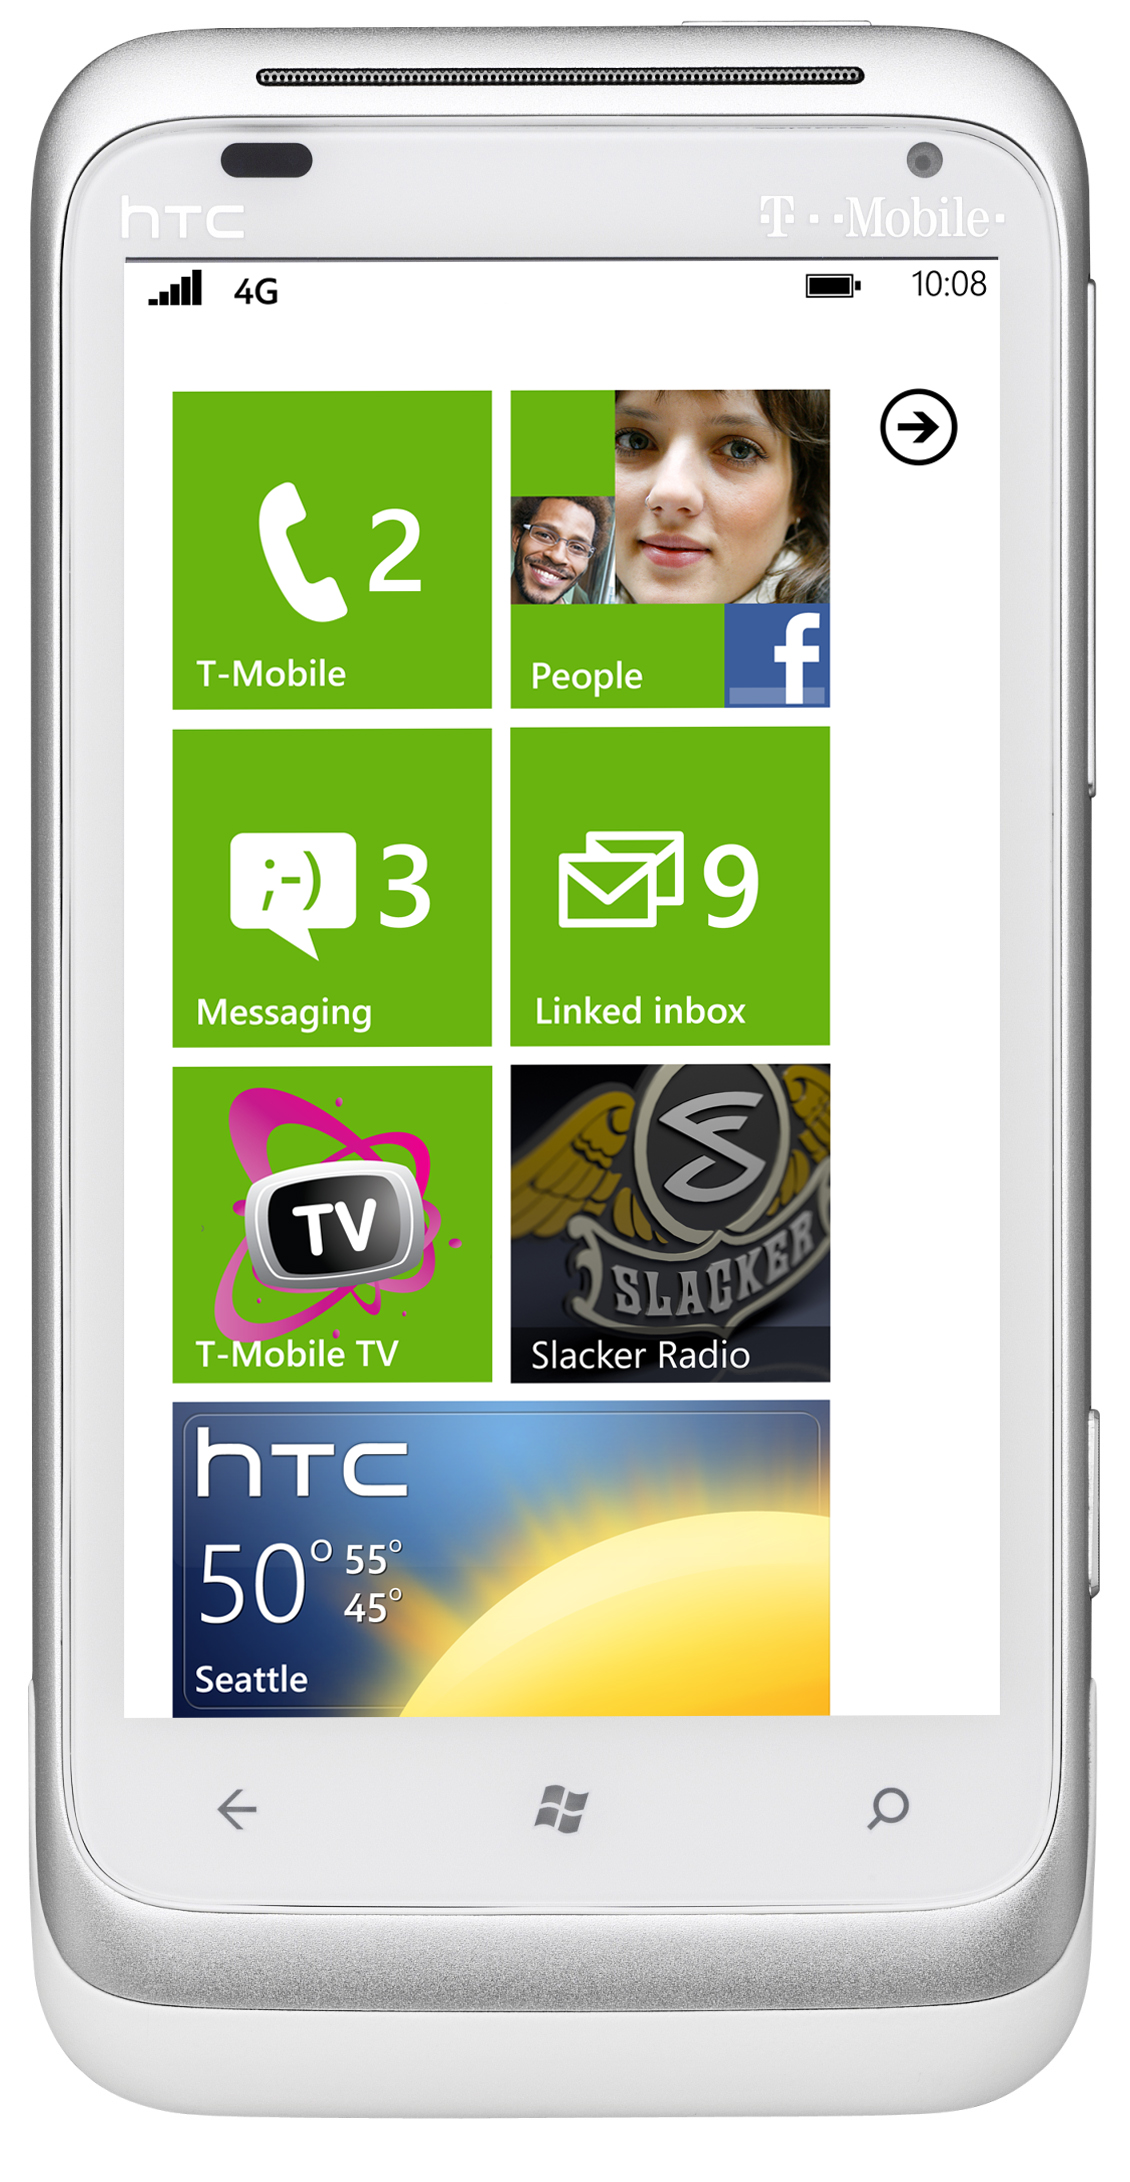 T mobile announces htc radar 4g its first windows 4g phone for Window 4g phone